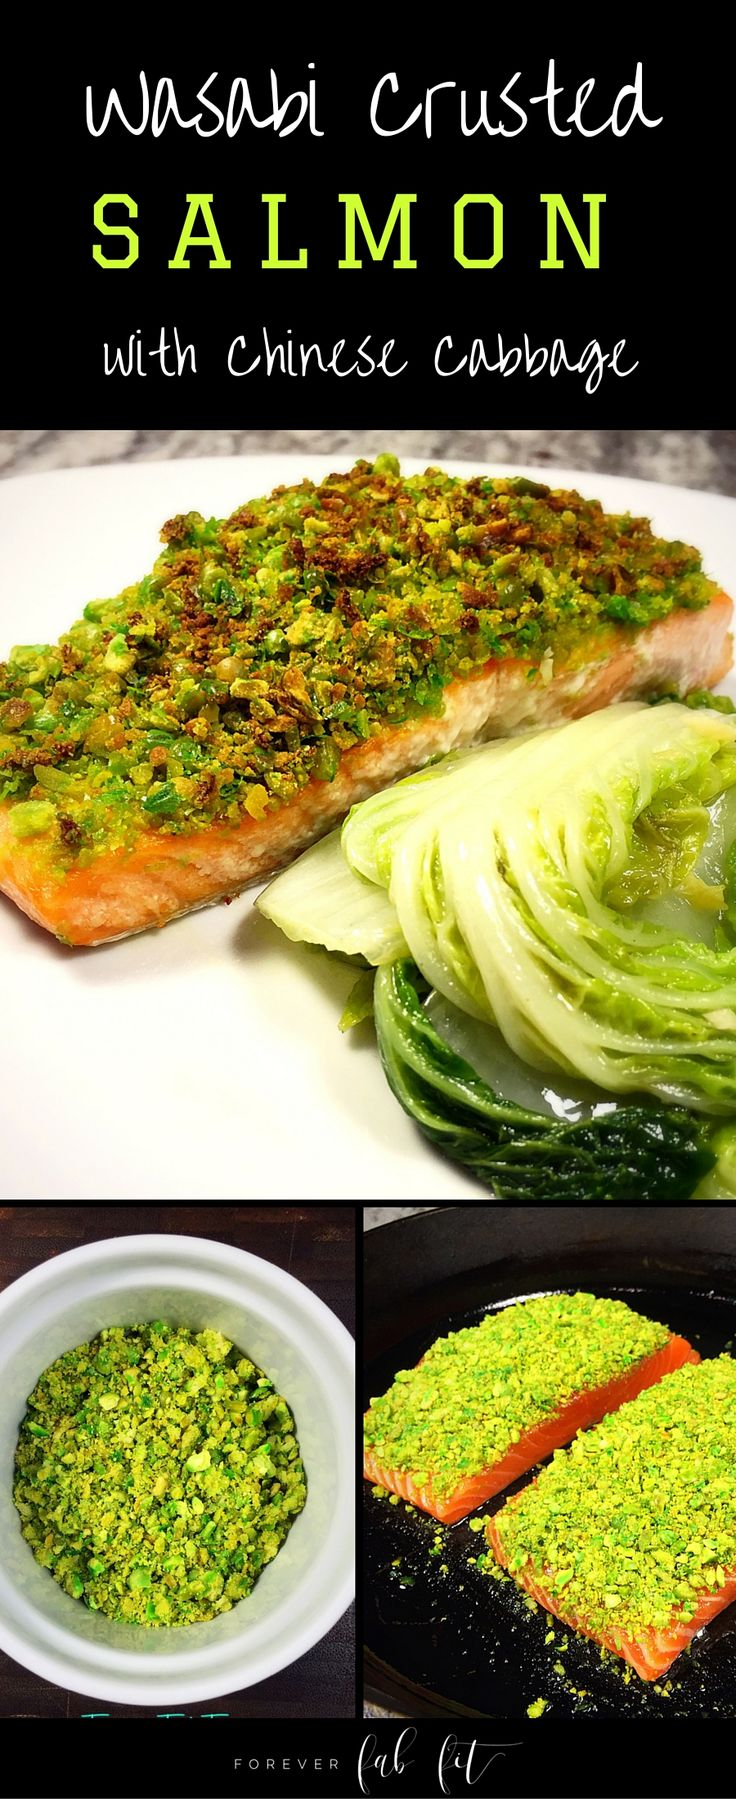 Wasabi Crusted Salmon with Stir-Fried Chinese Cabbage as a side. The salmon is delightful & surprisingly not over spicy w/ the wasabi pea crust.The cabbage has a delicious Asian-inspired sauce made from toasted sesame, soy sauce, garlic, ginger & rice vinegar. Quick & easy plus YUM!!  Click through to see this healthy recipe as well as more quick and easy recipes.  Also available - get instant access to the FREE Eat Clean Meal Planning System (50+ pages) to help you eat healthier.